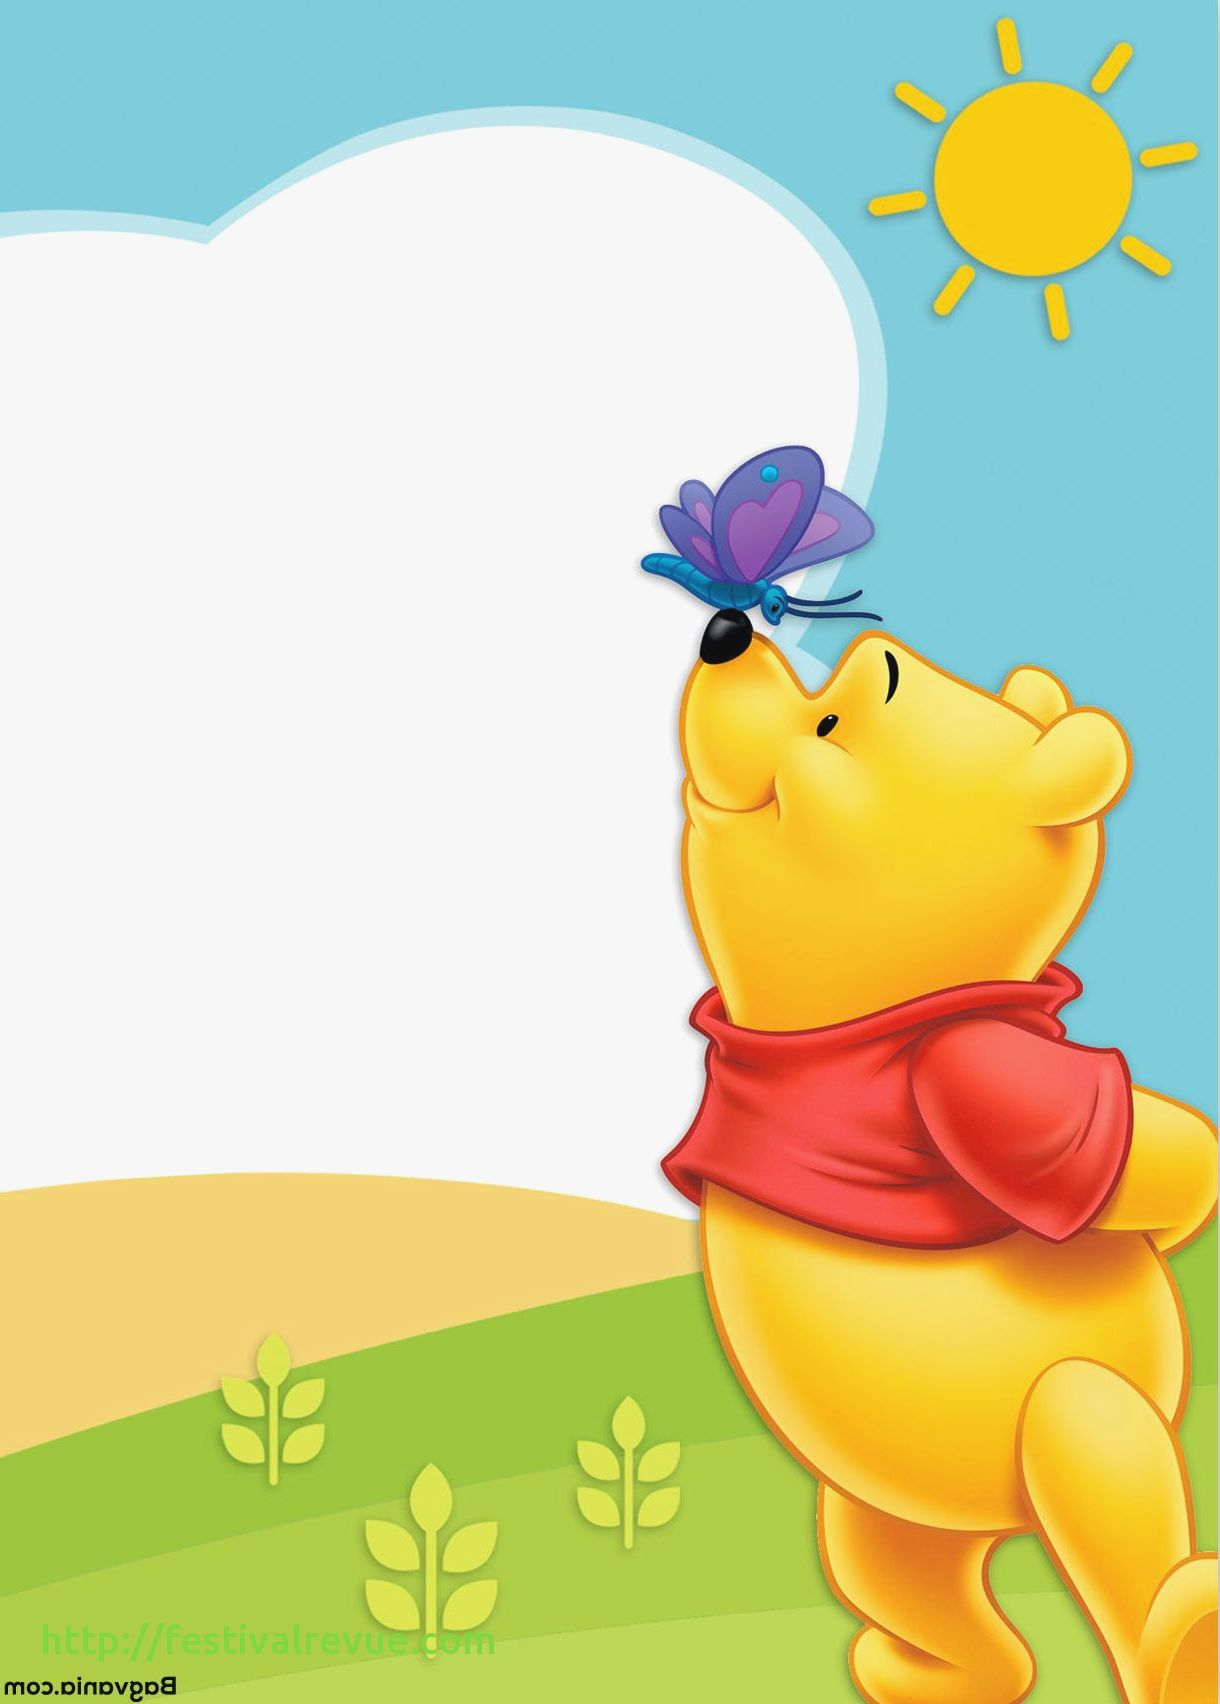 Winnie The Pooh Wallpaper For Phone 60 Wallpapers